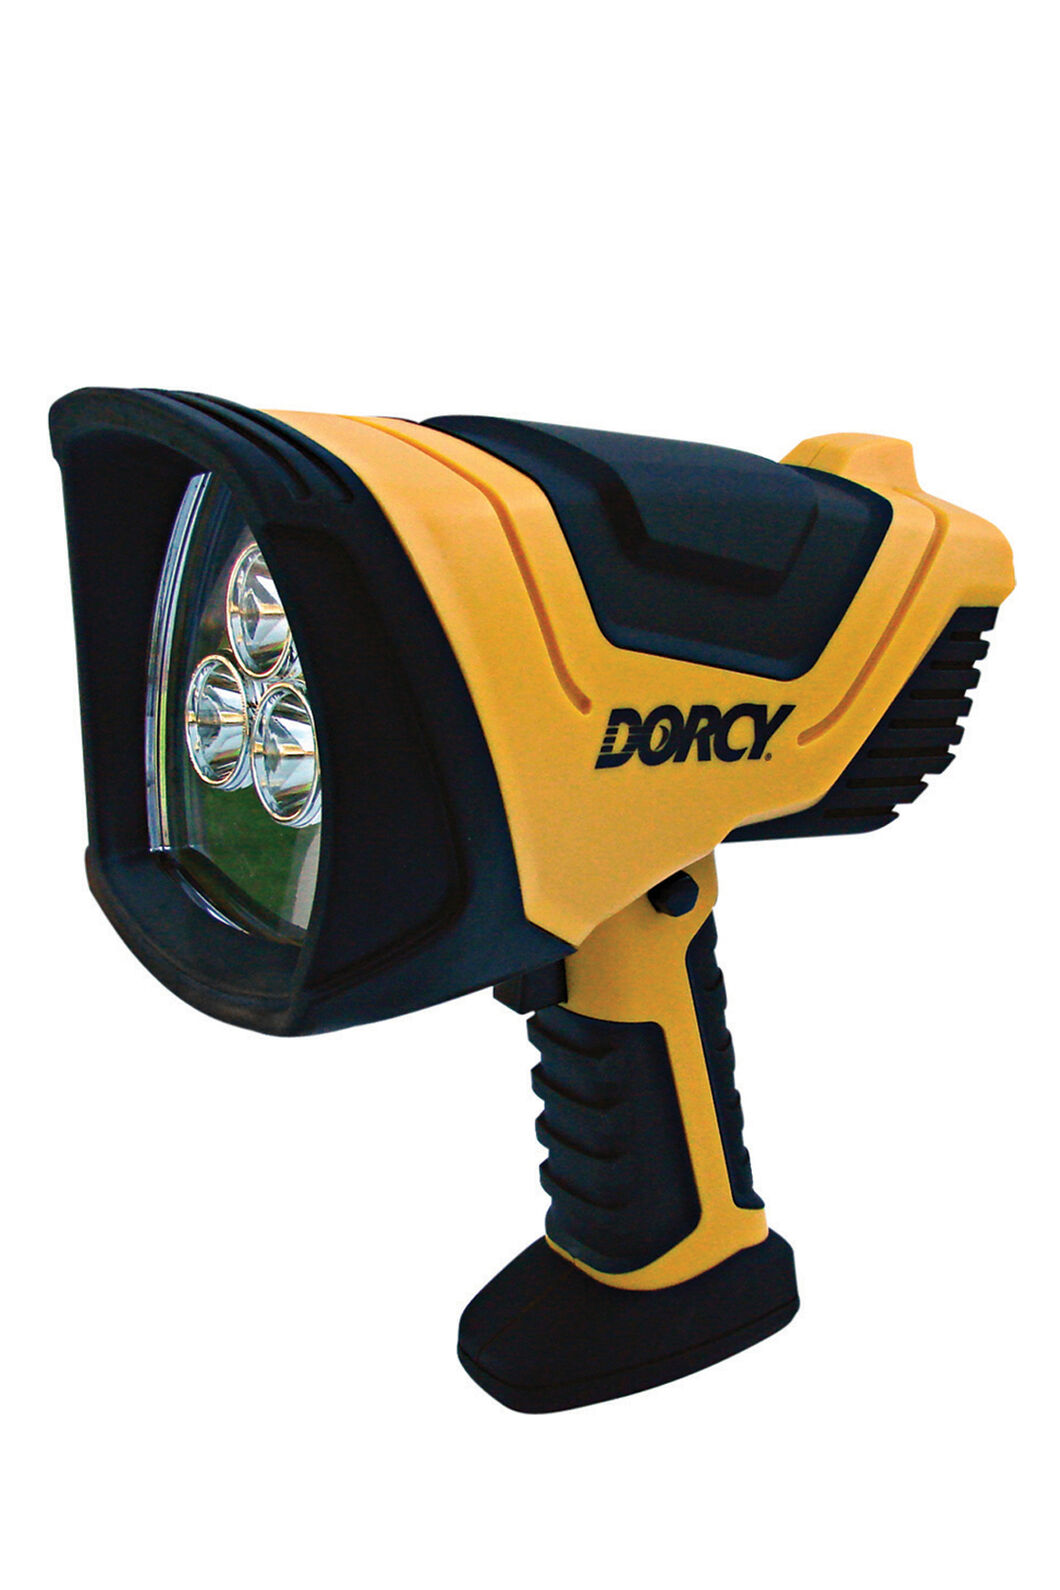 Dorcy LED Rechargeable Spotlight, None, hi-res